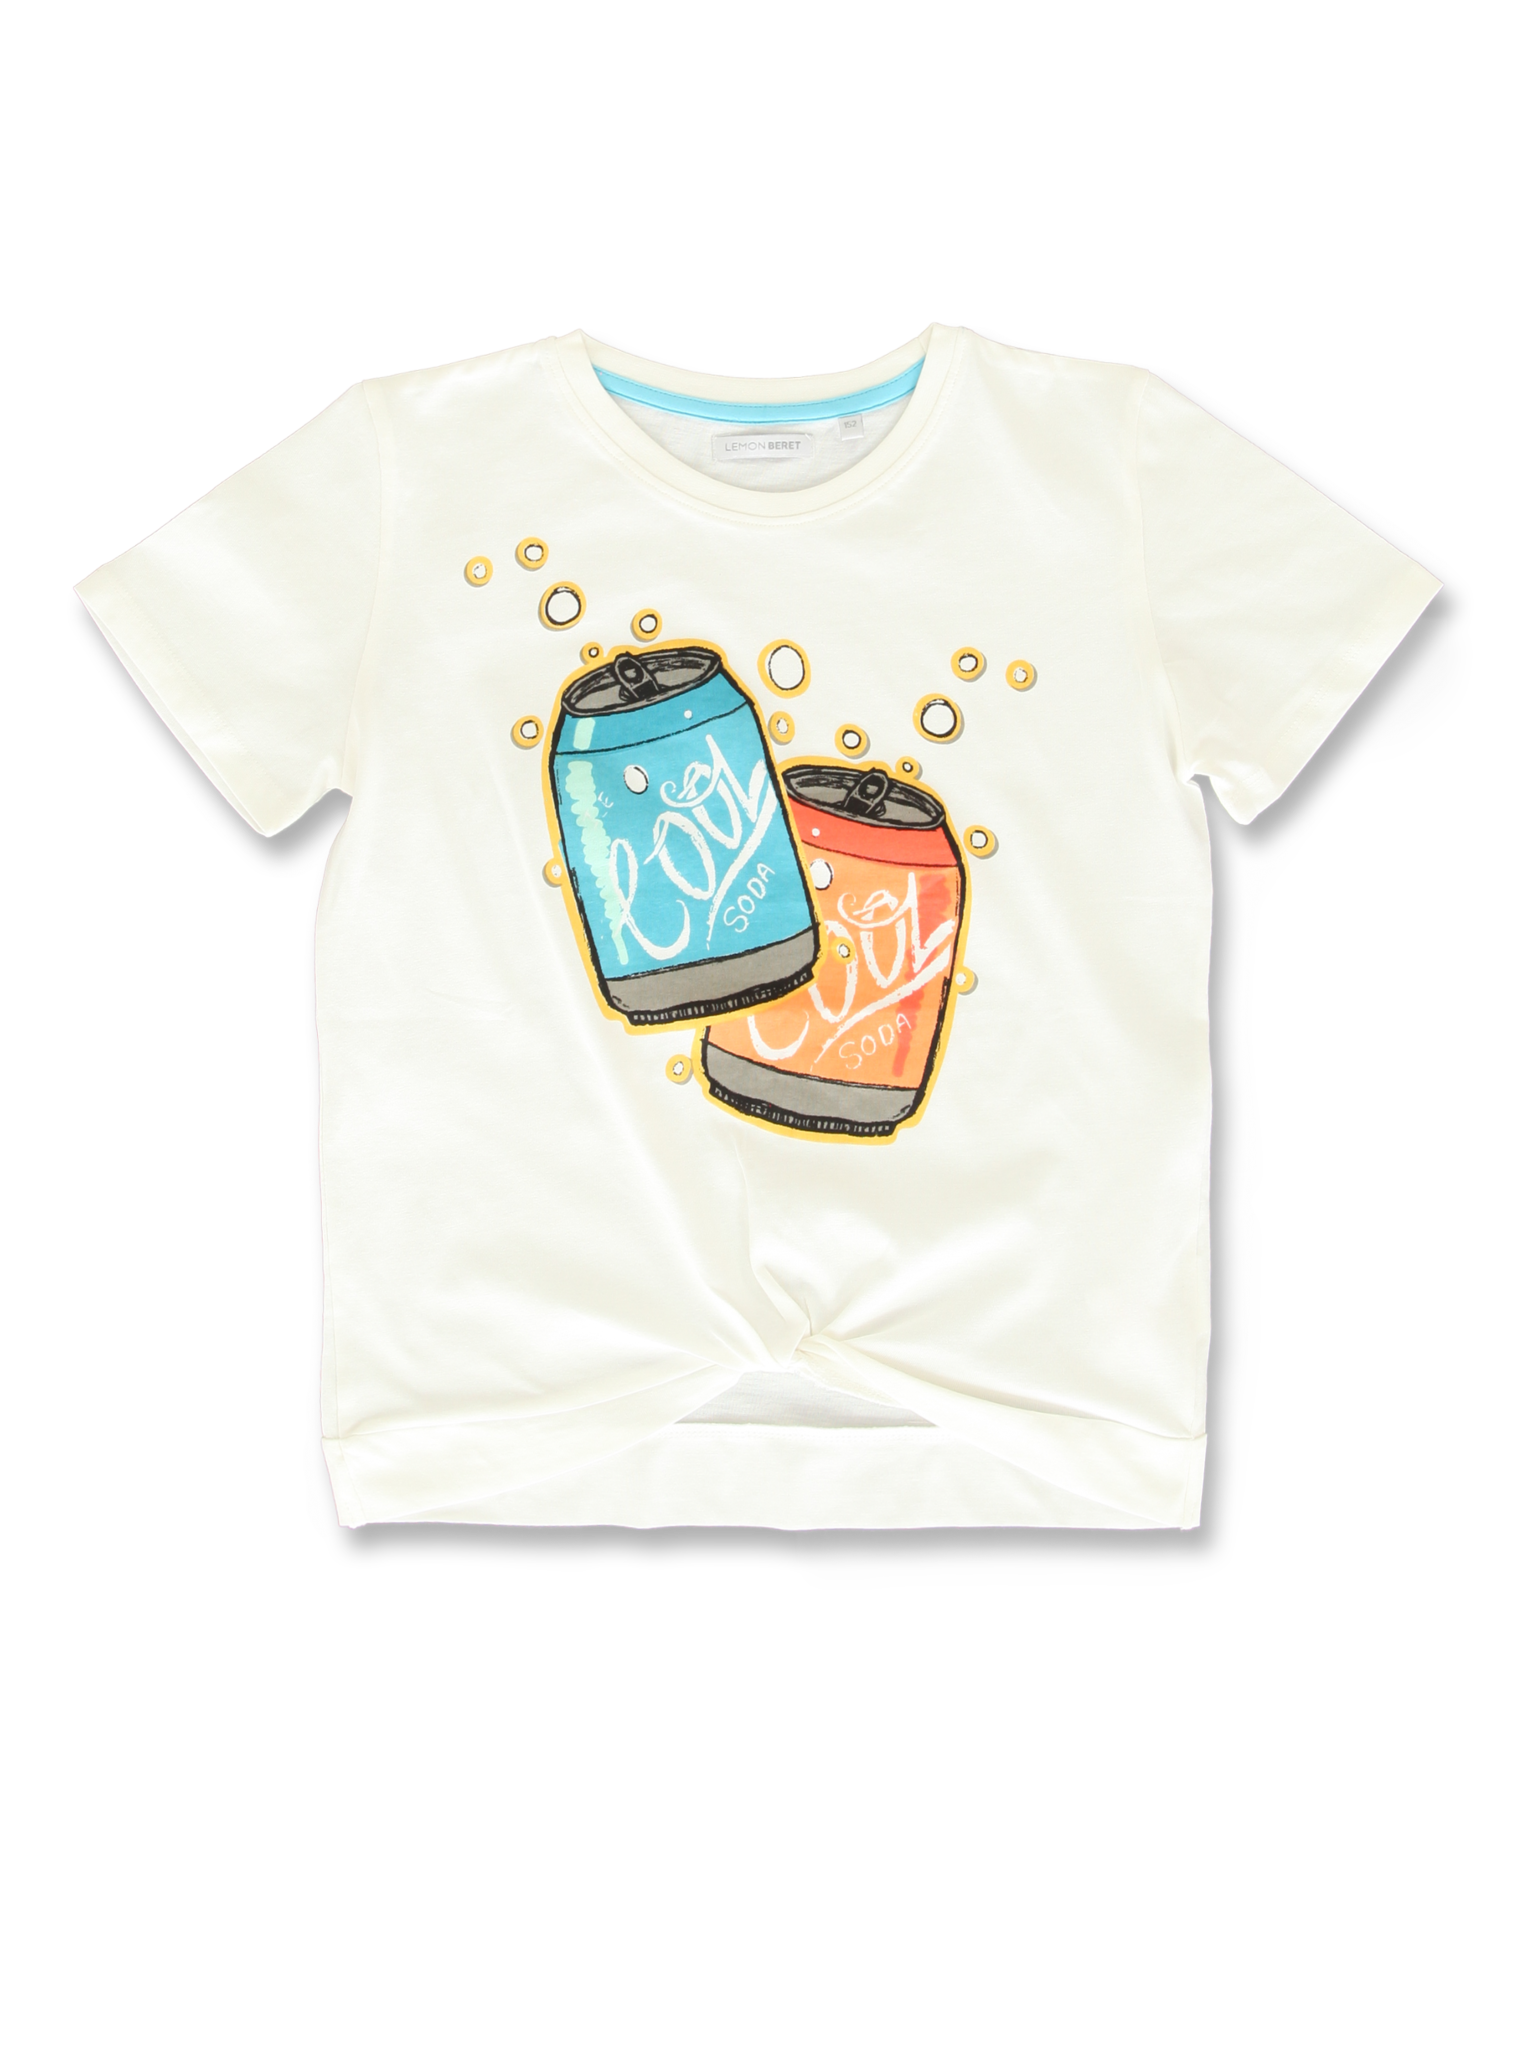 All Brands | Summerproducts Teen Girls | T-shirt | 12 pcs/box